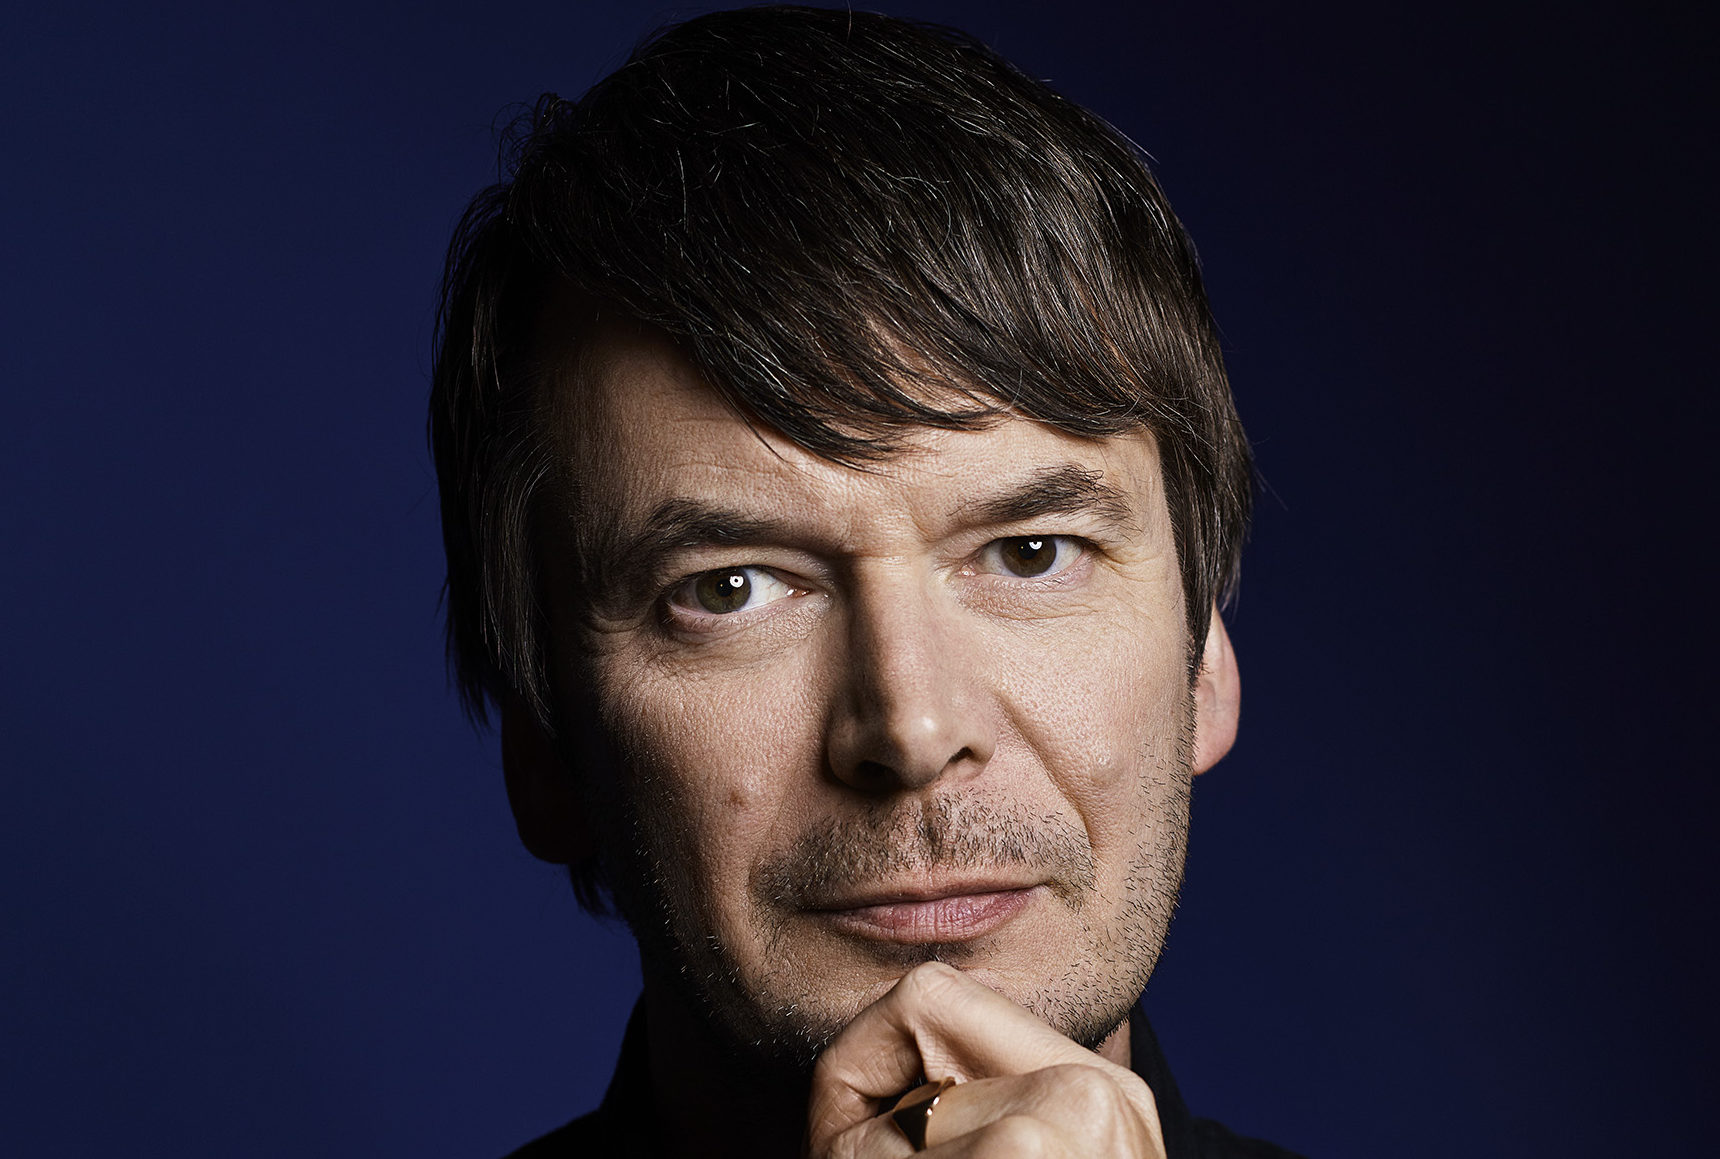 Ian Rankin's new book is A Song for the Dark Times.